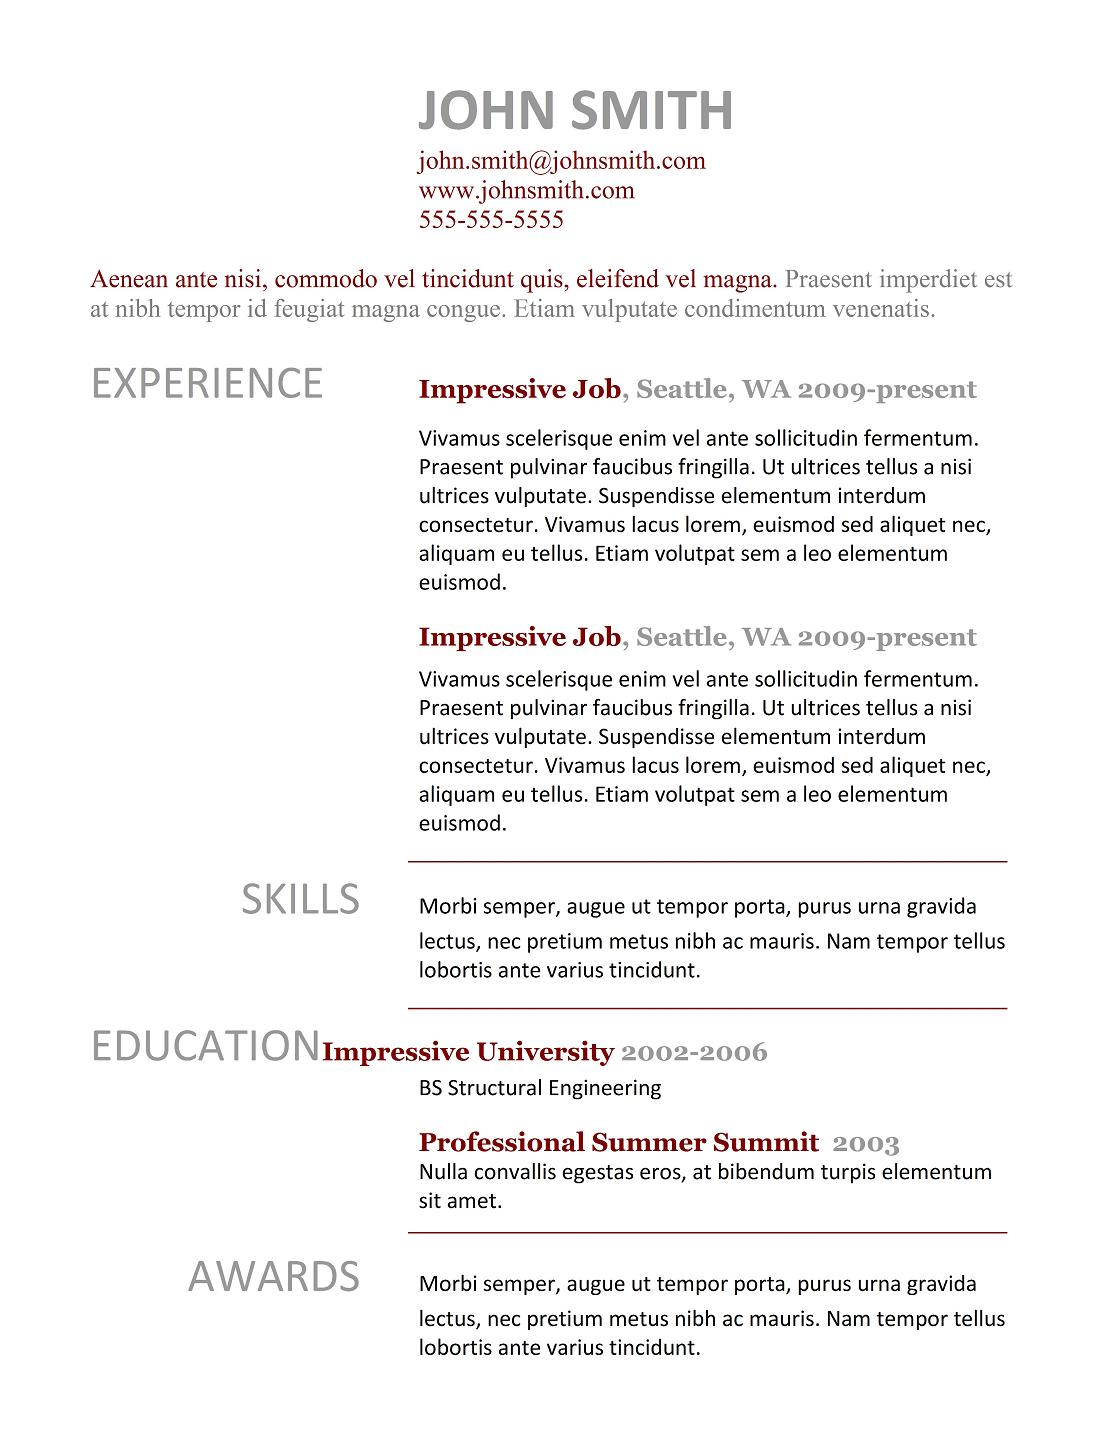 how to prepare a curriculum vitae templates best cv 3 doc